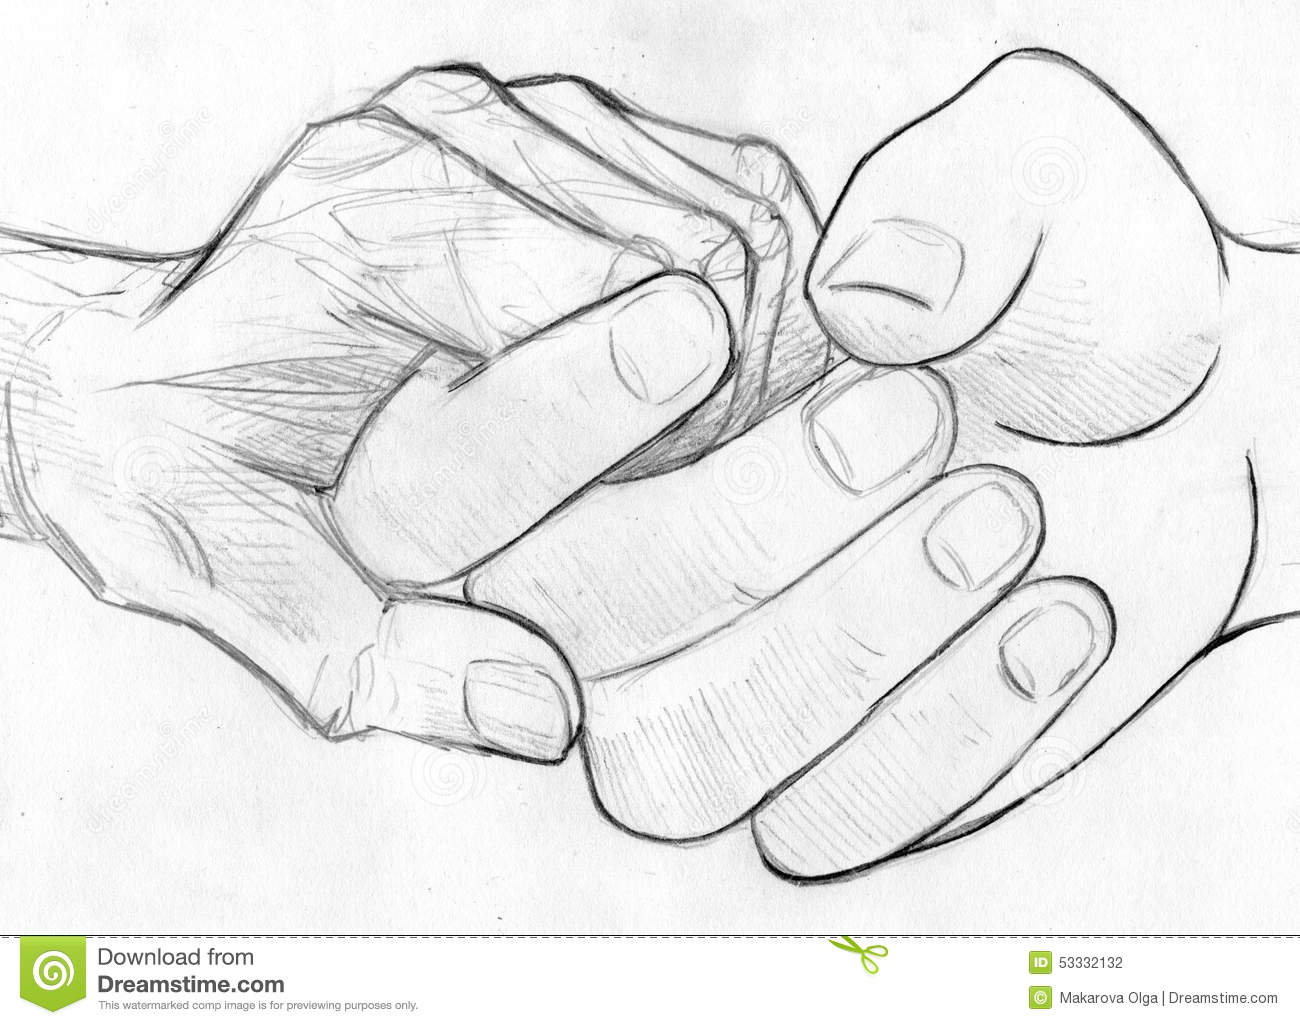 1300x1025 Hands Holding Sketch Holding Elderly Hand